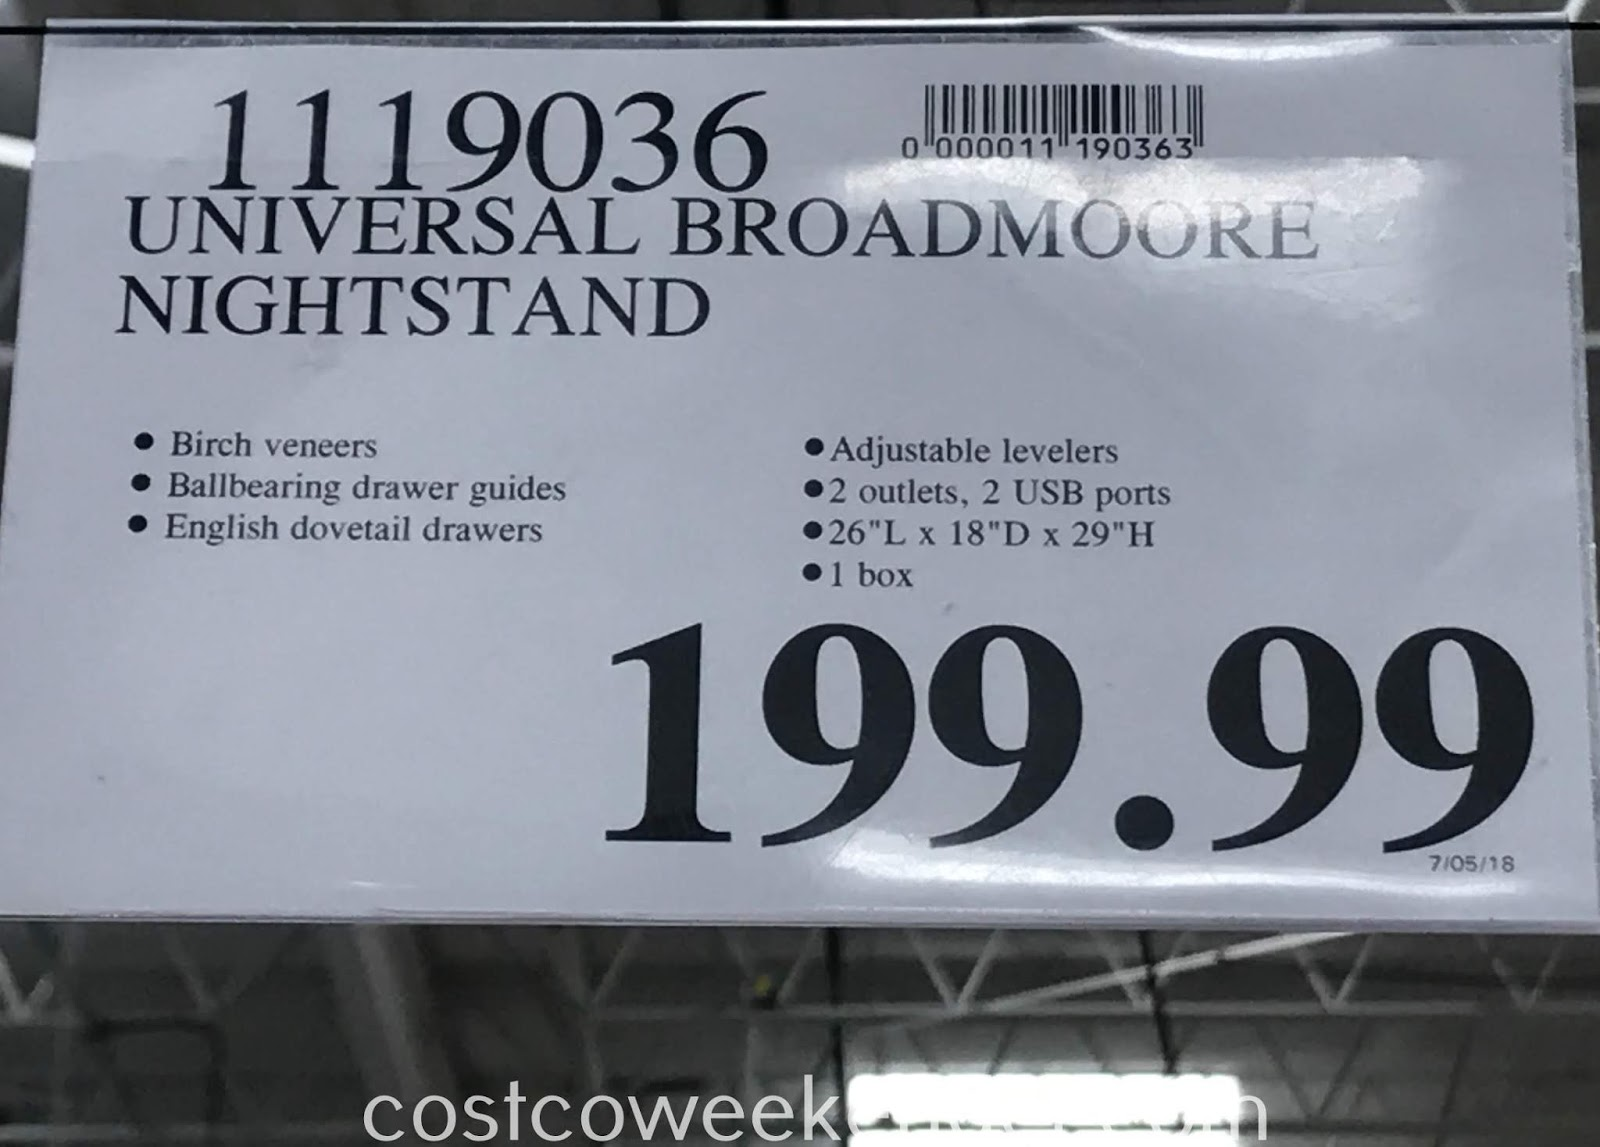 Deal for the Universal Broadmoore Nightstand at Costco